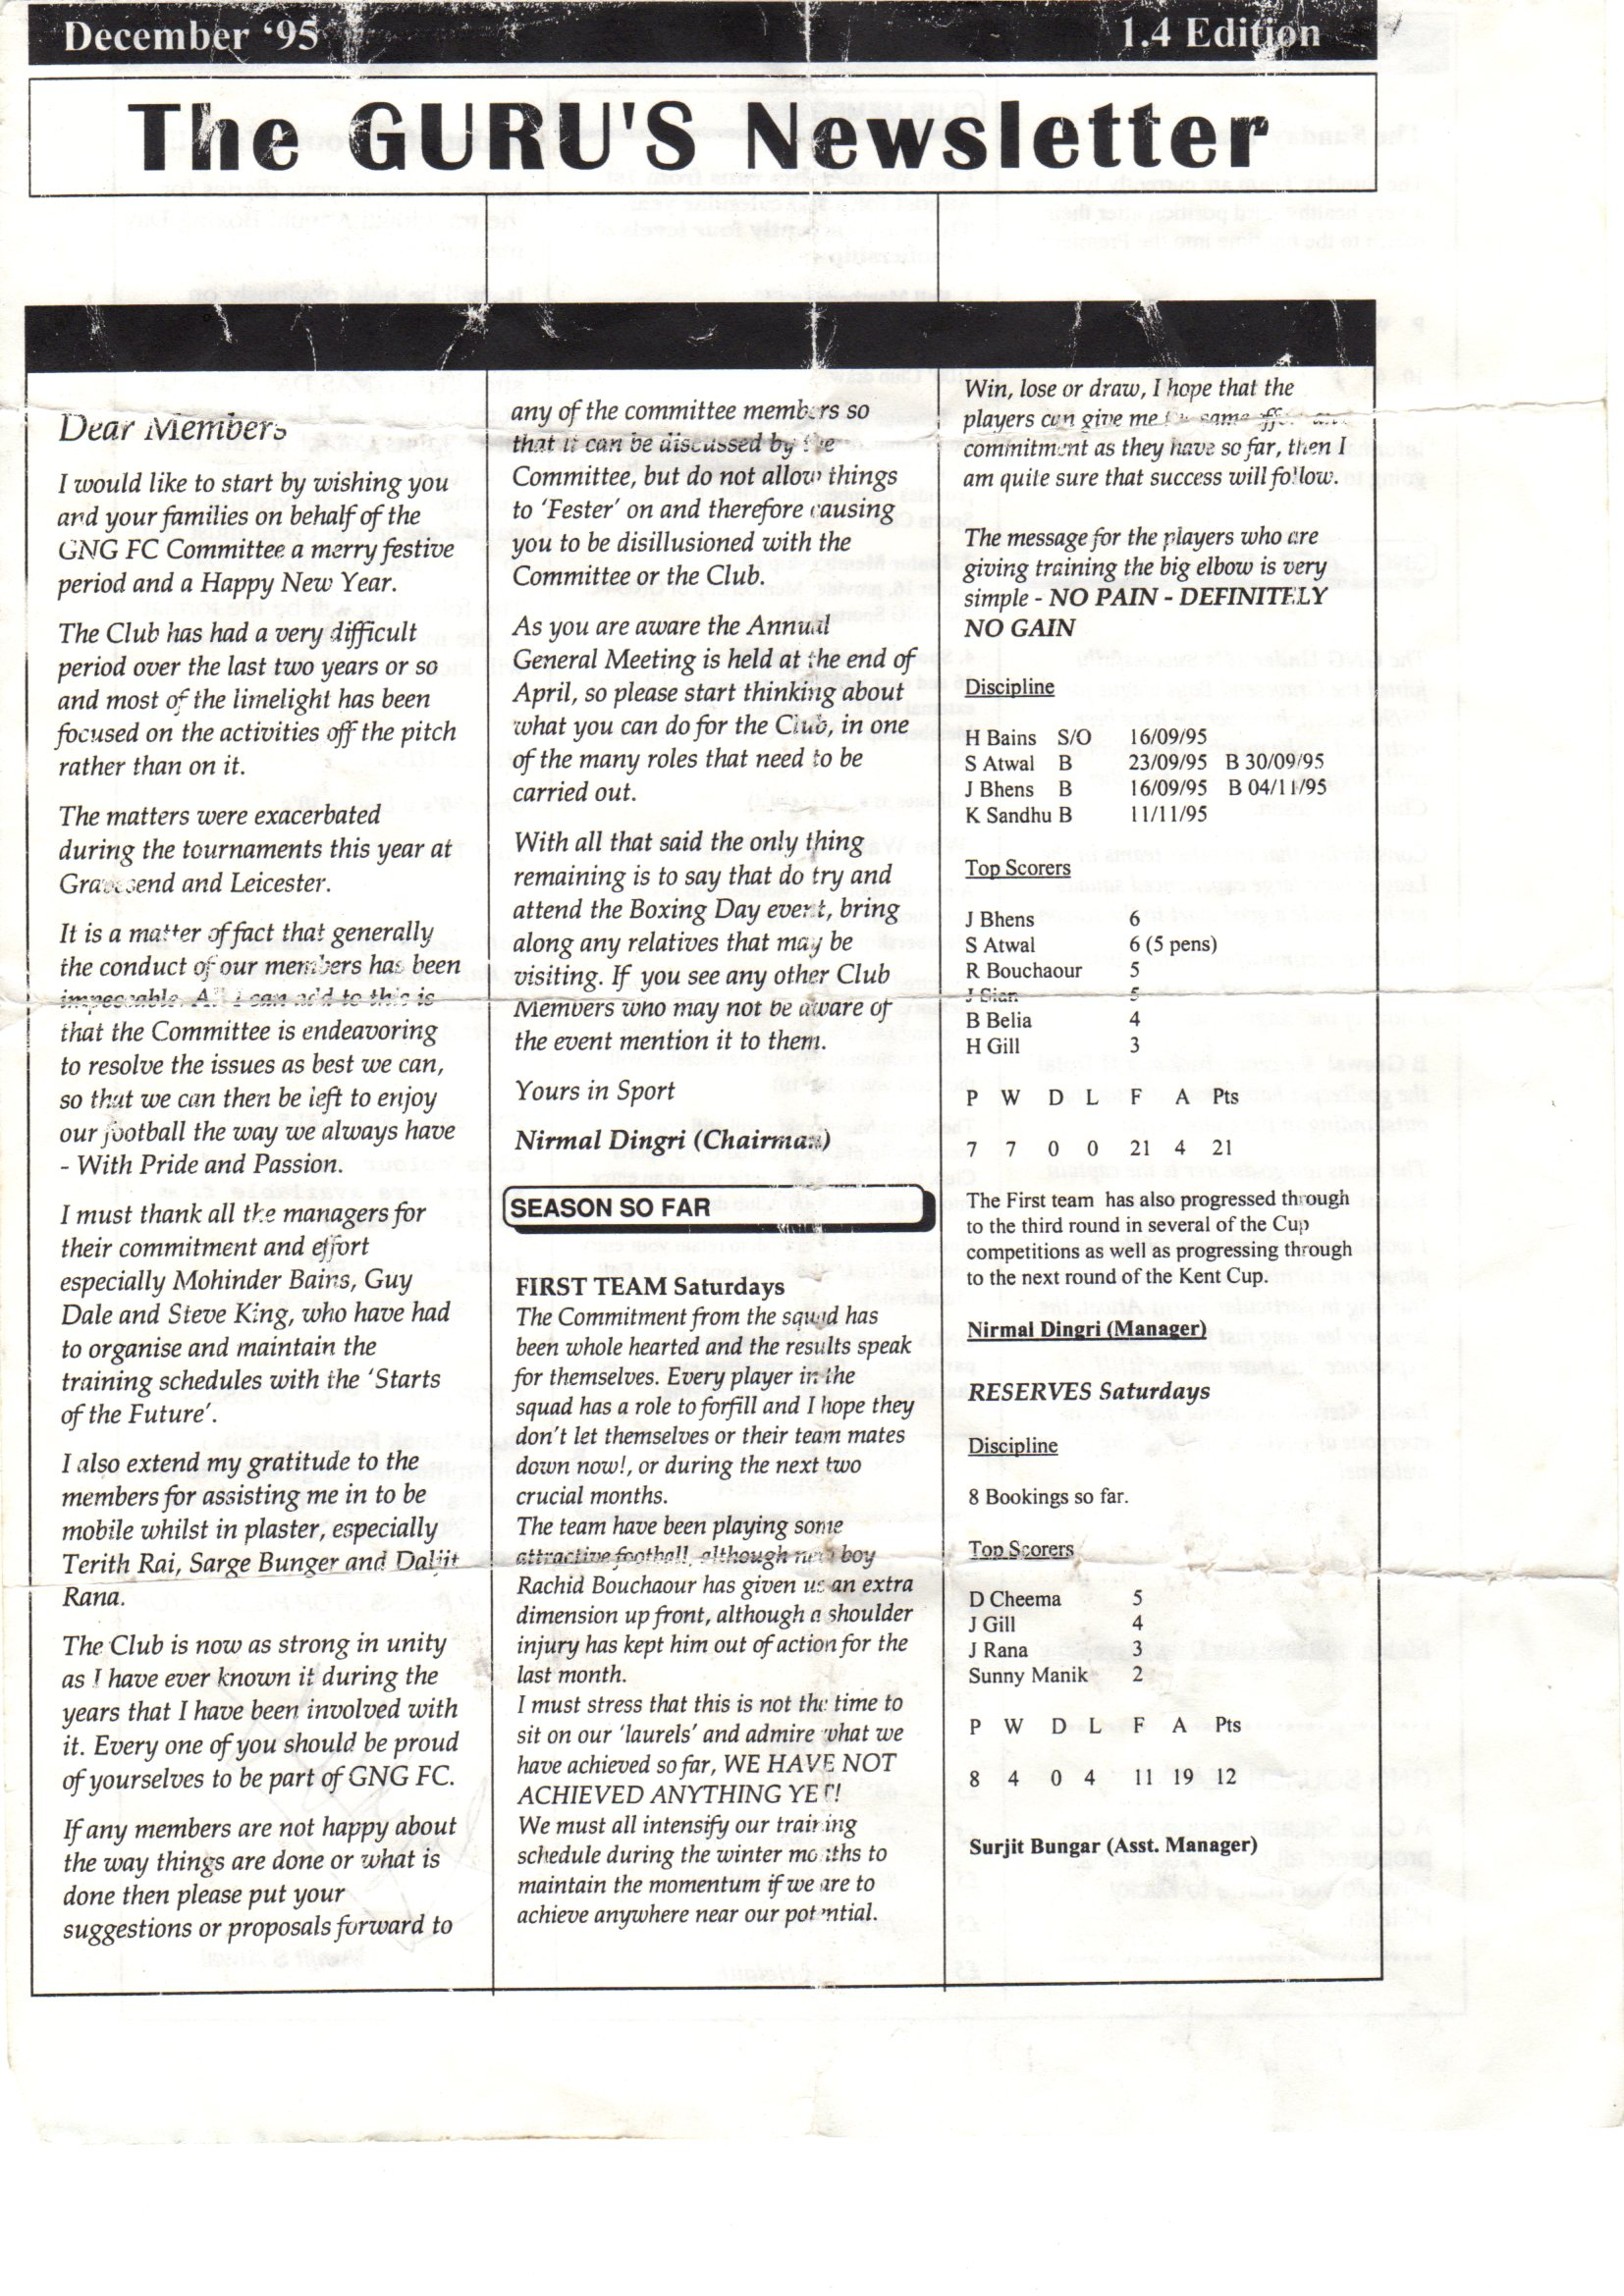 Old News letter from 1995 - page 1